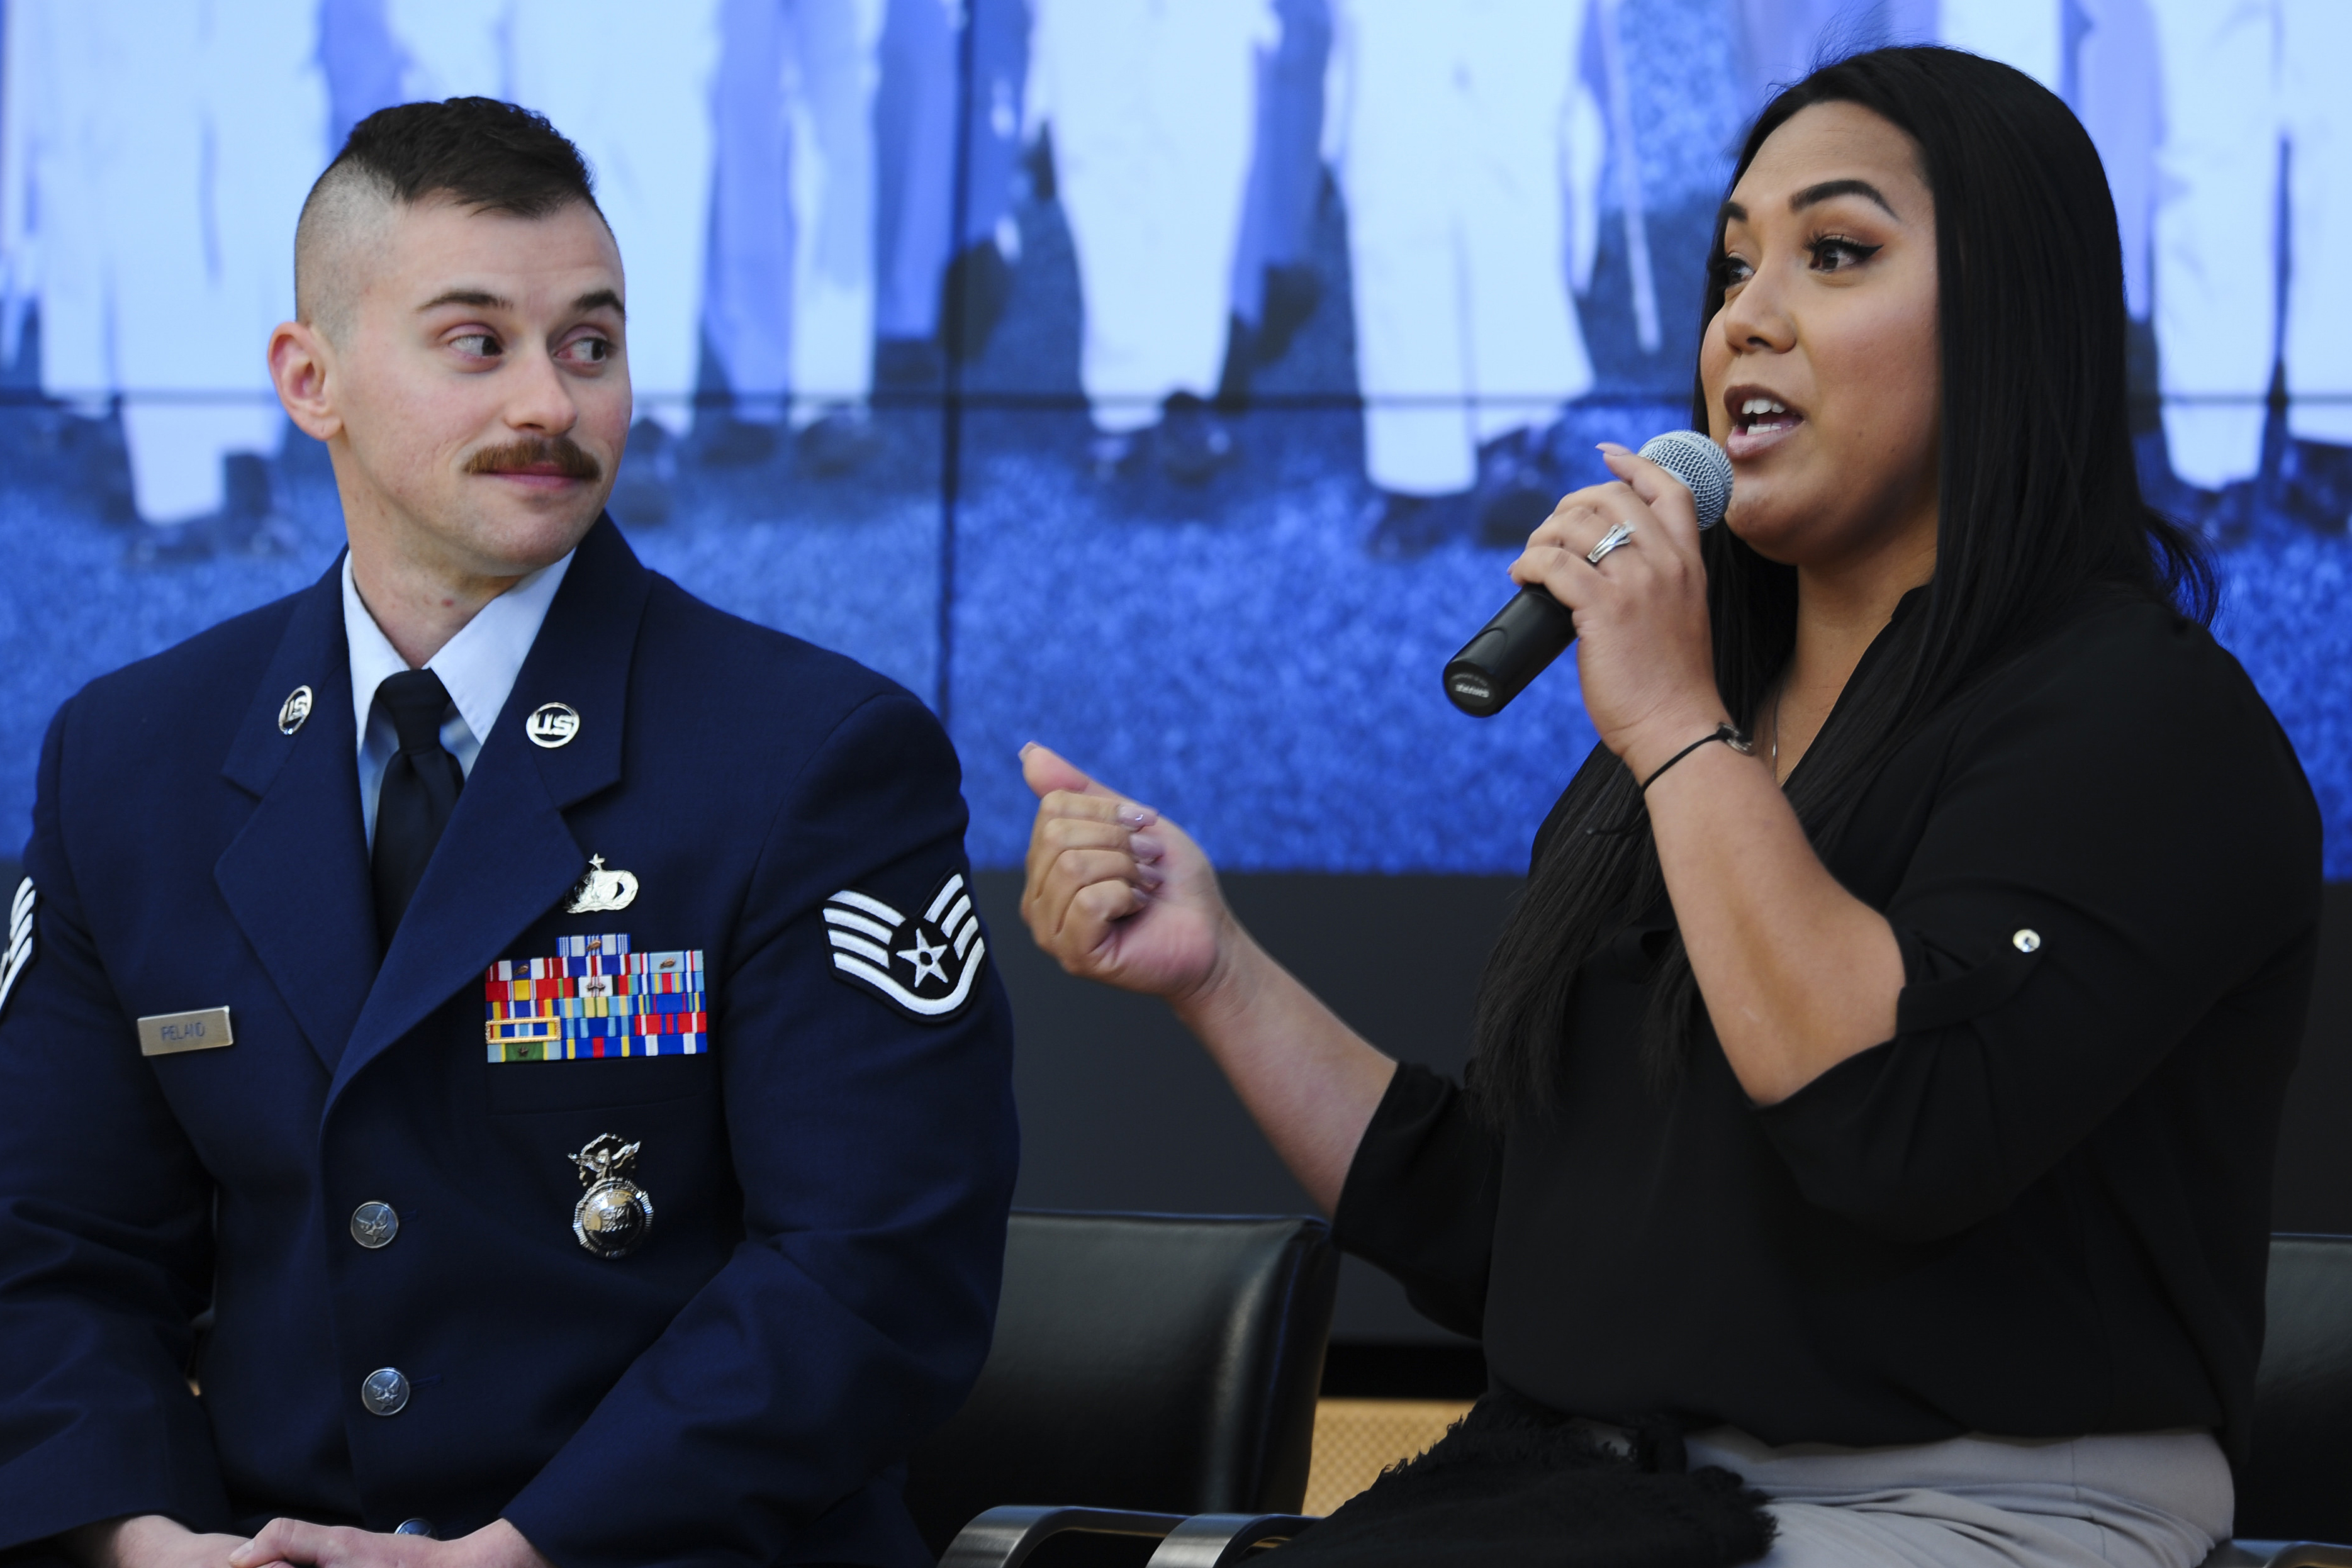 Caption: Staff Sgt. Logan Ireland and his wife, Laila, speak about transgender issues at the U.S. Air Force Academy in February 2018., Credit: Julius Delos Reyes / American Homefront